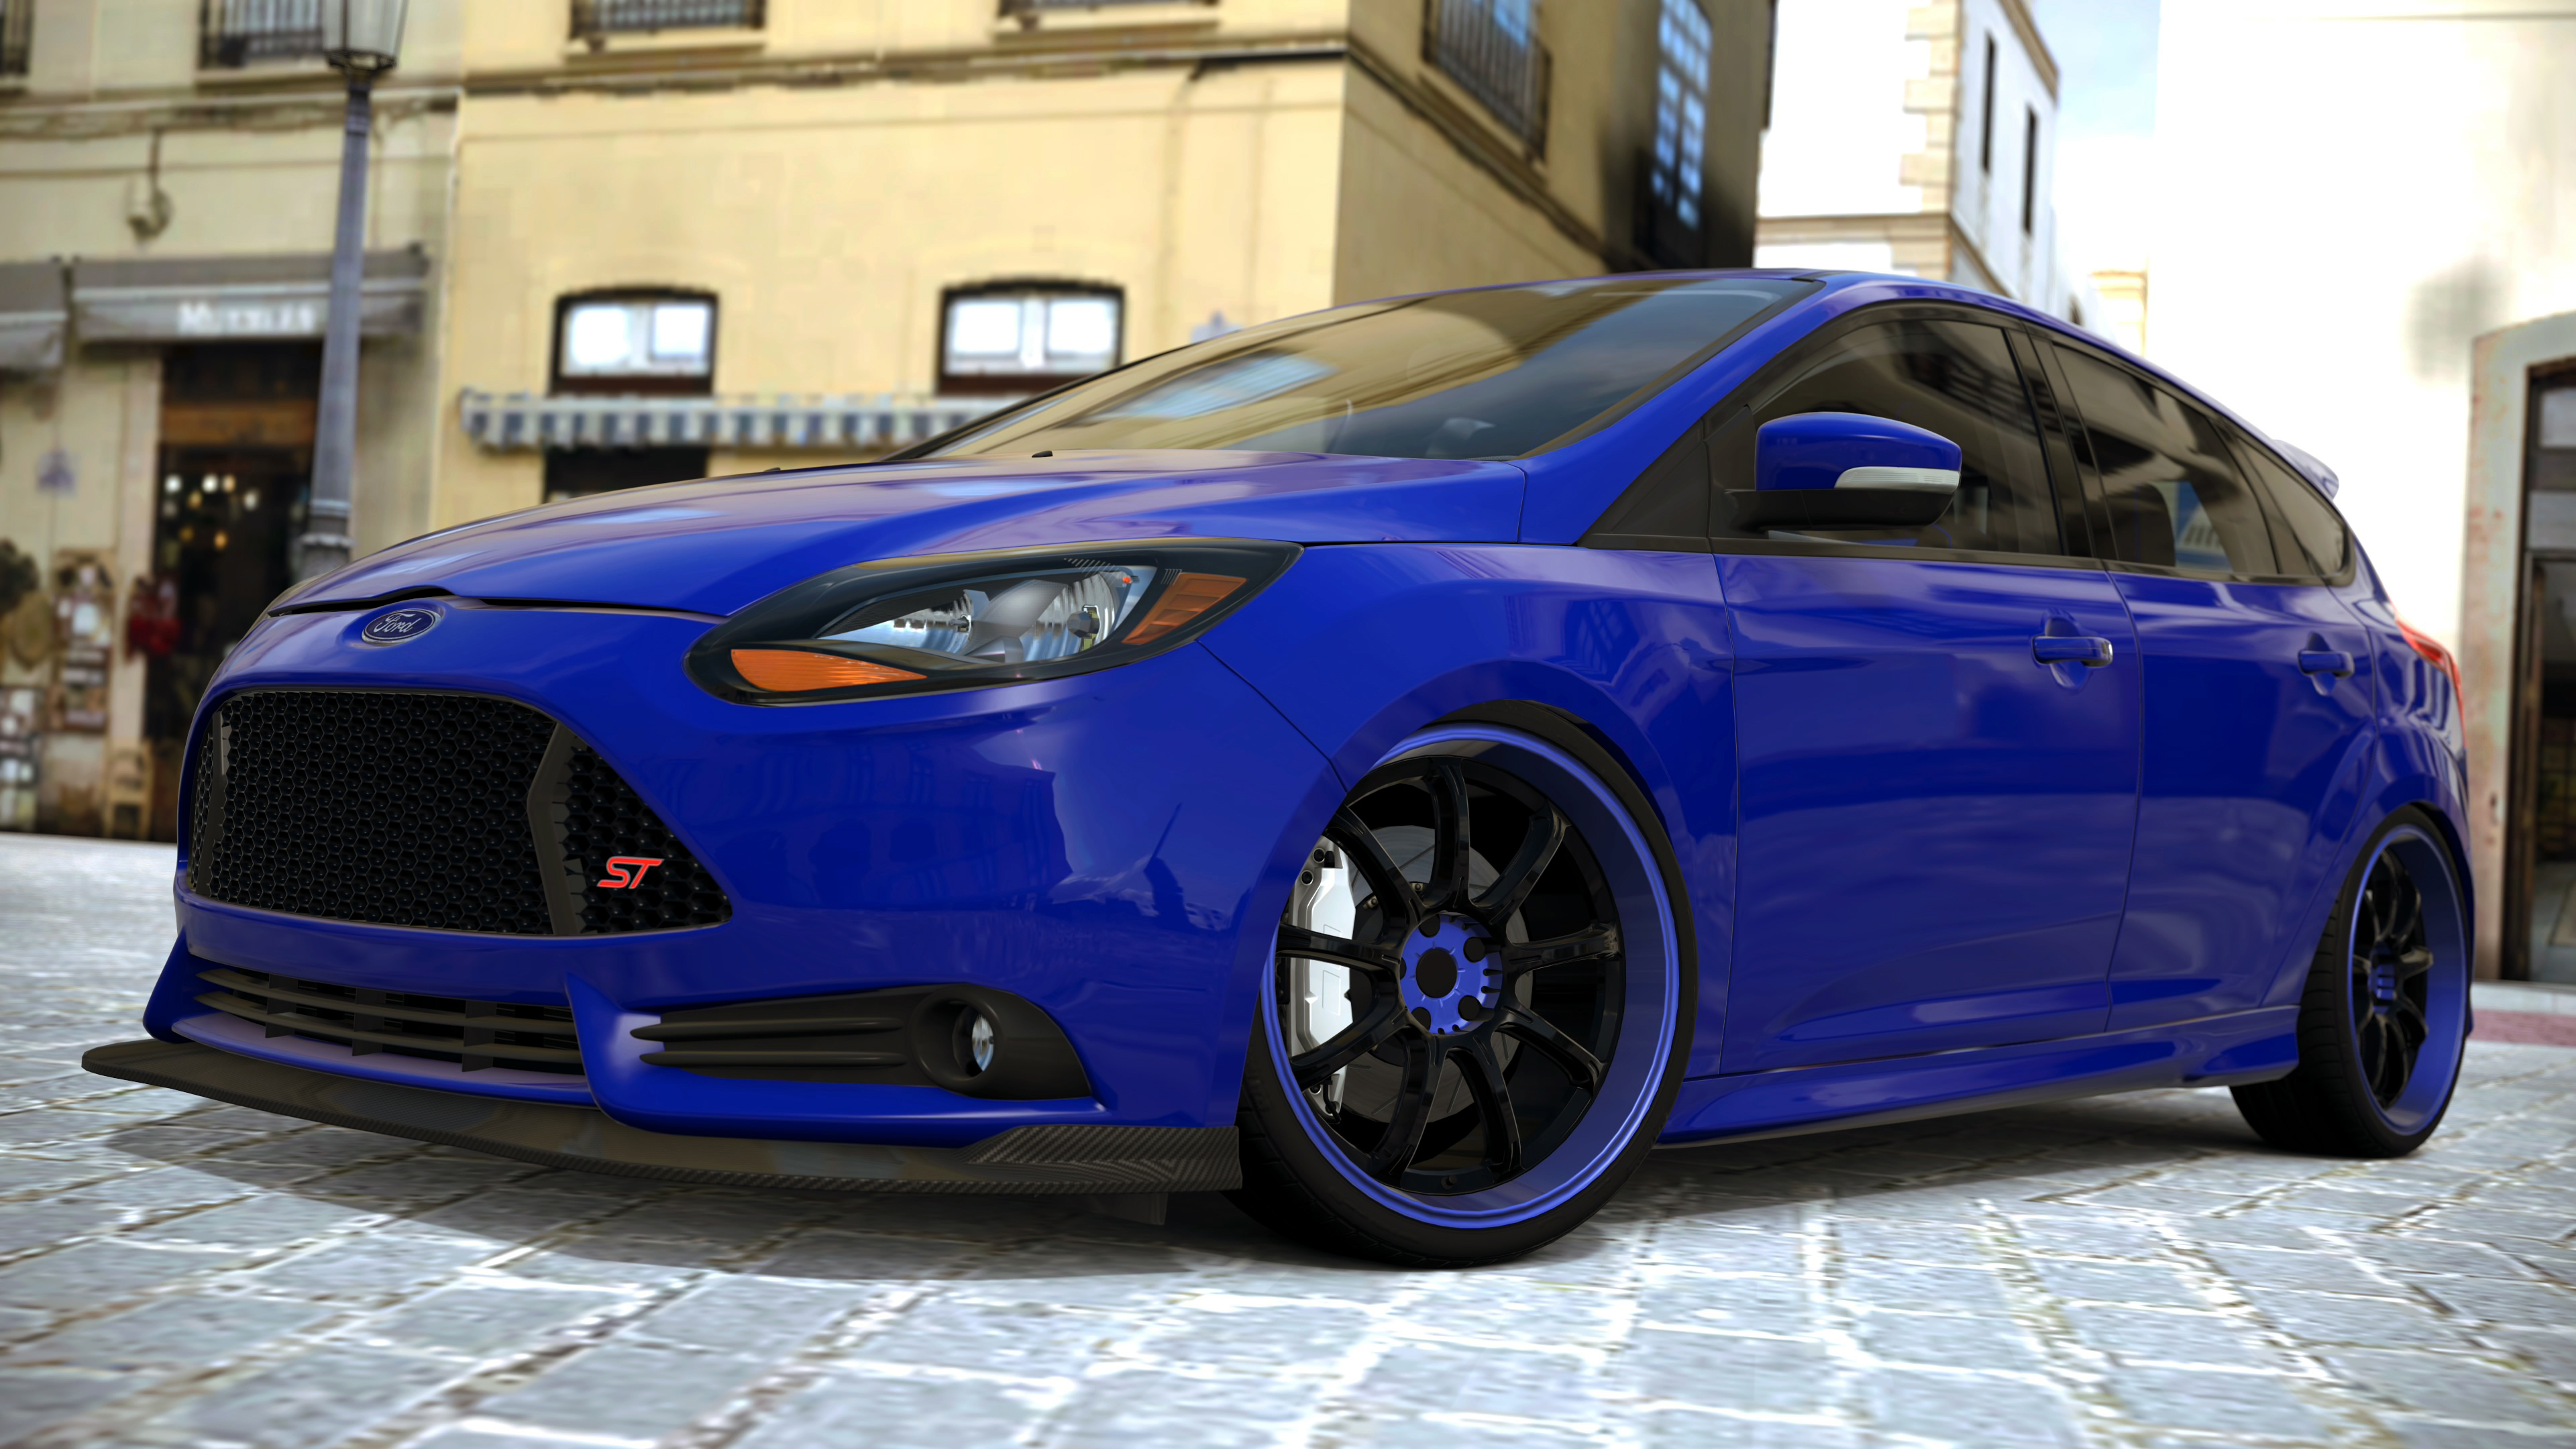 Ford Focus ST Gran Turismo 6 by Vertualissimo on DeviantArt